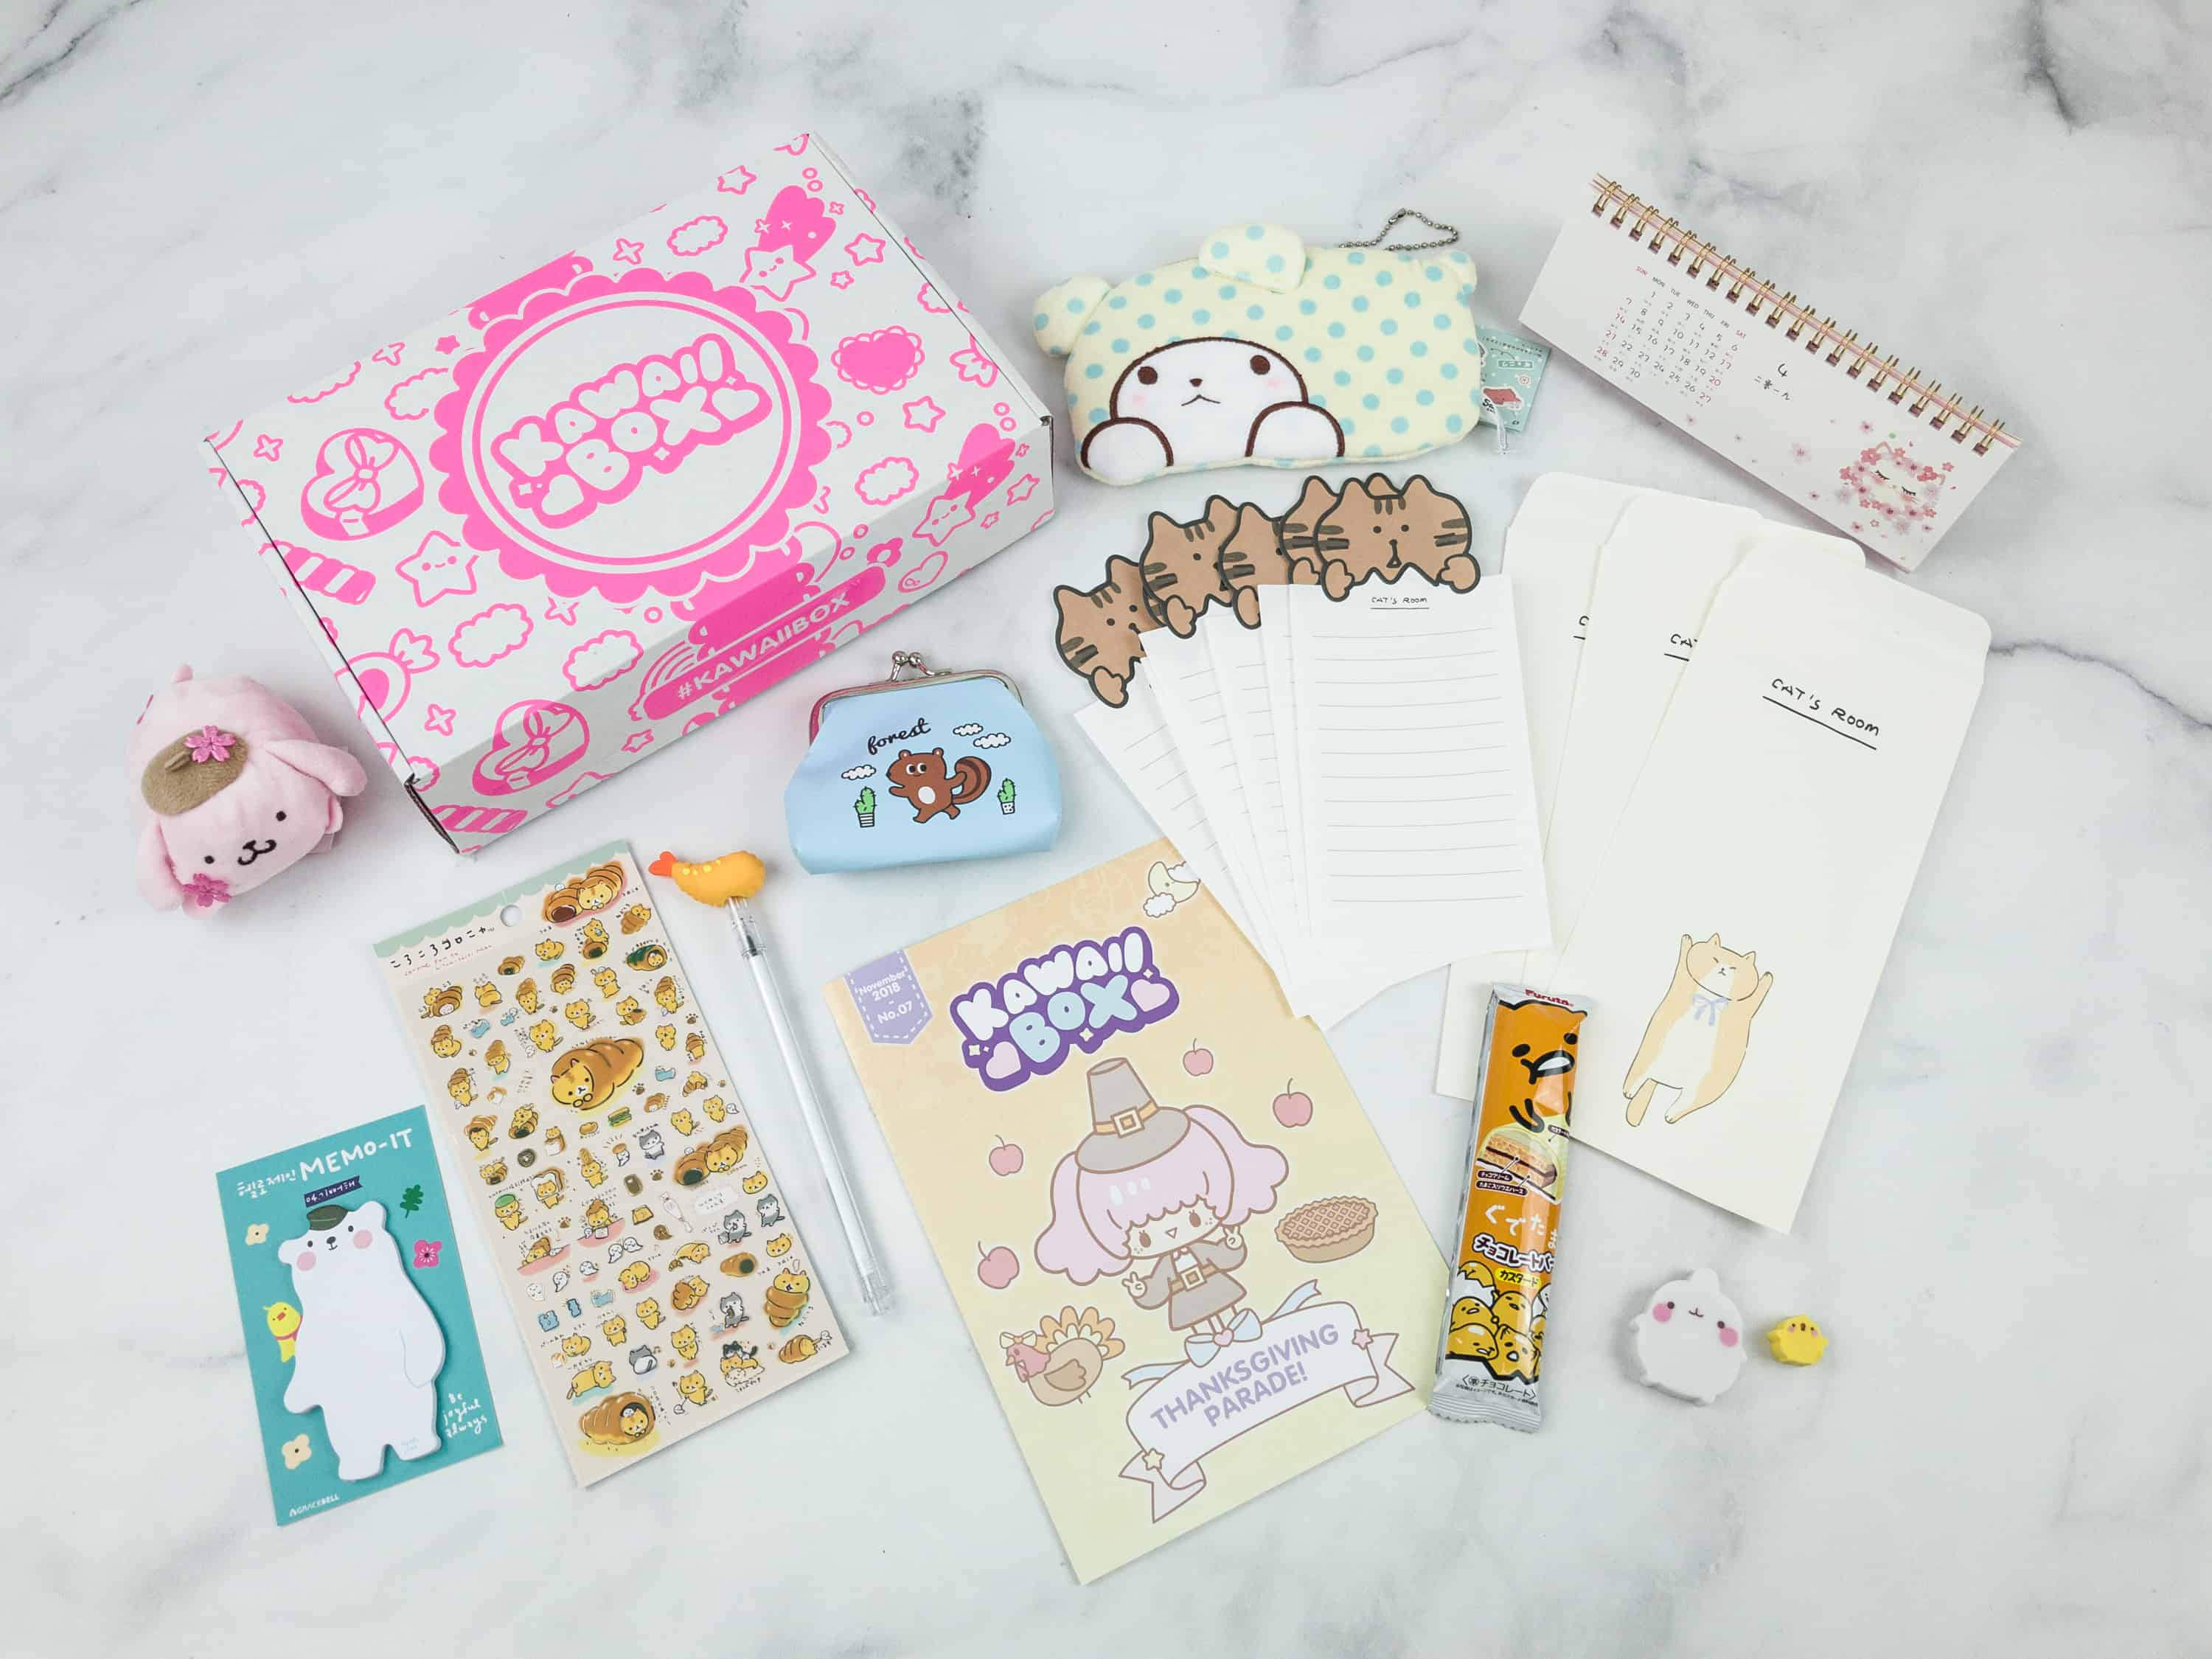 Kawaii Box November 2018 Subscription Box Review